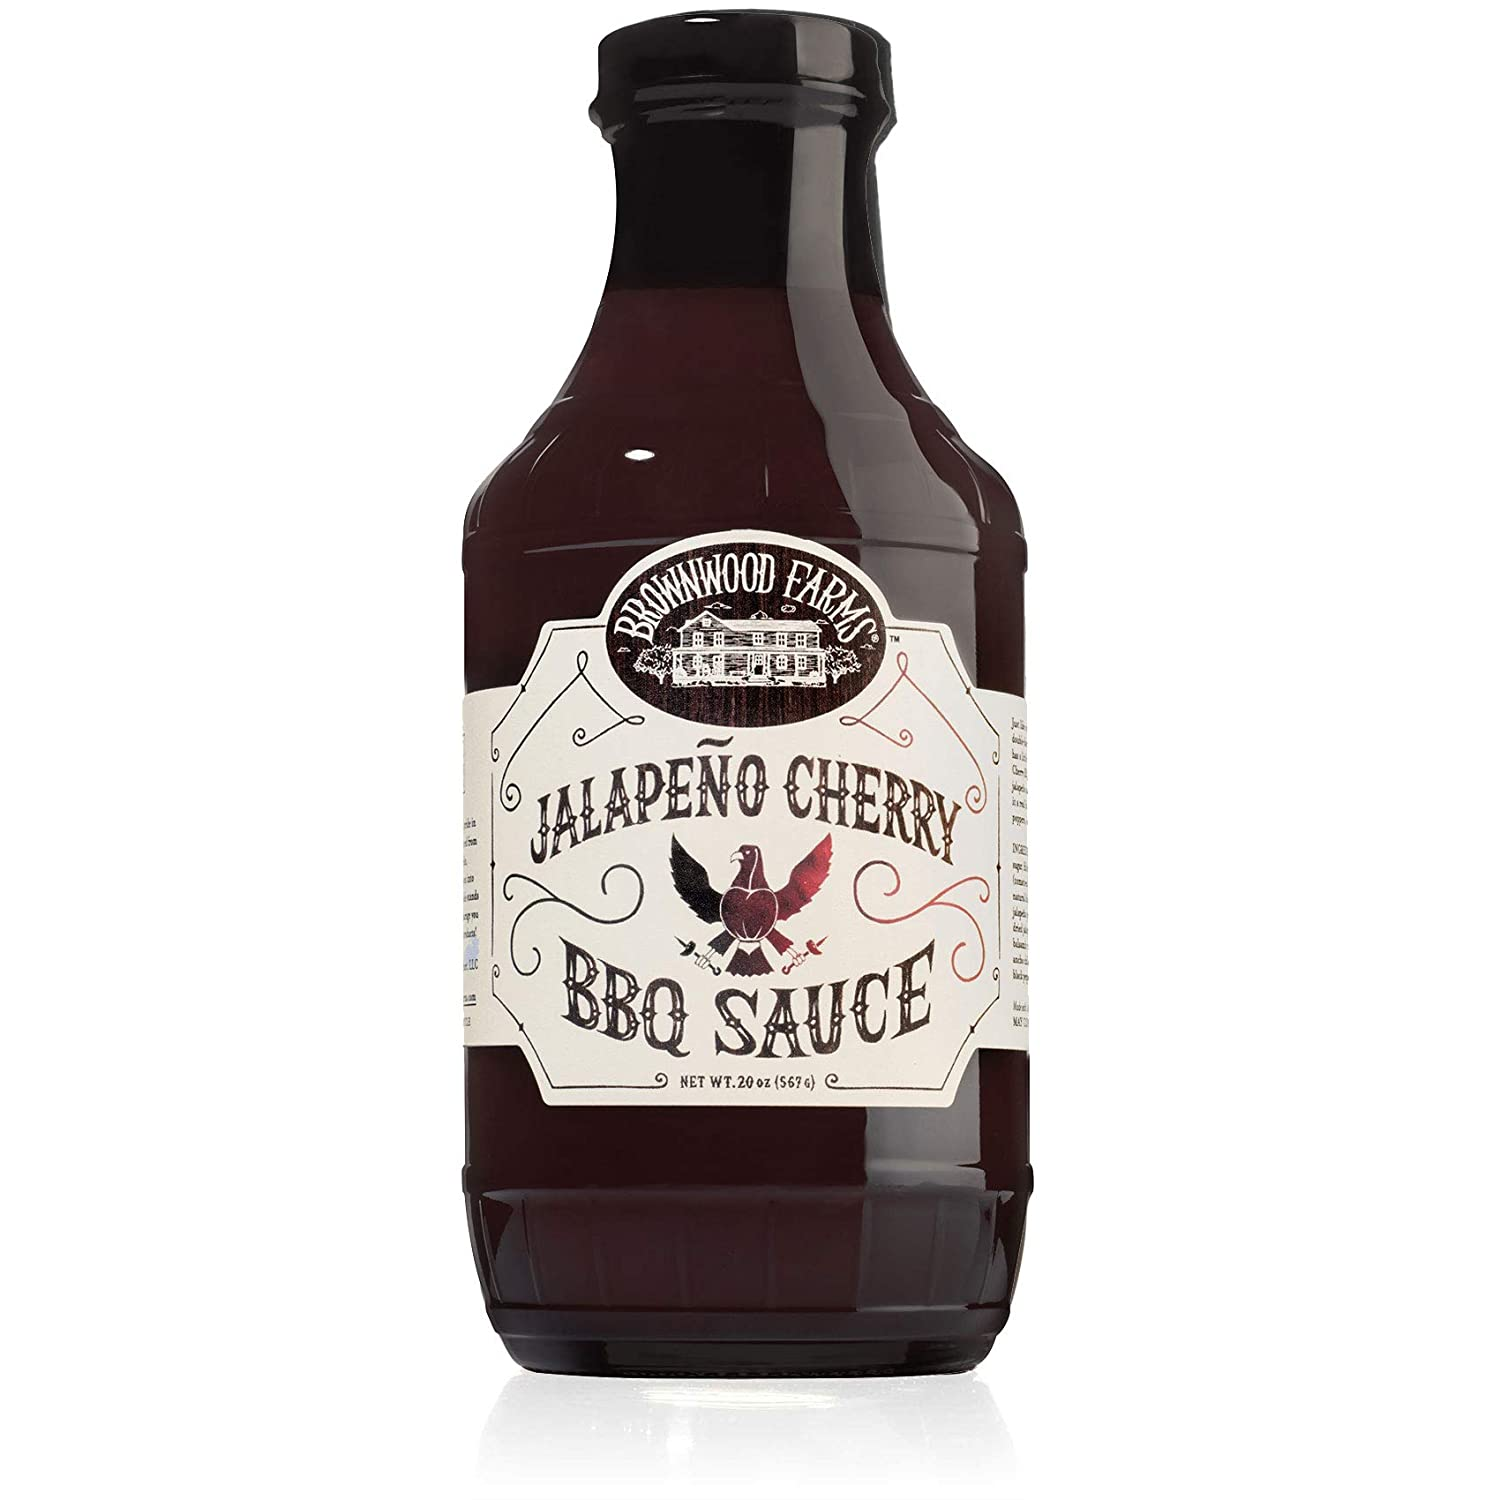 Jalapeño Cherry BBQ Sauce - Brownwood Farms - 20 oz, single pack - Sweet & Tangy Flavors - Gluten Free Barbecue Spread for Meats, Veggies & Other Foods